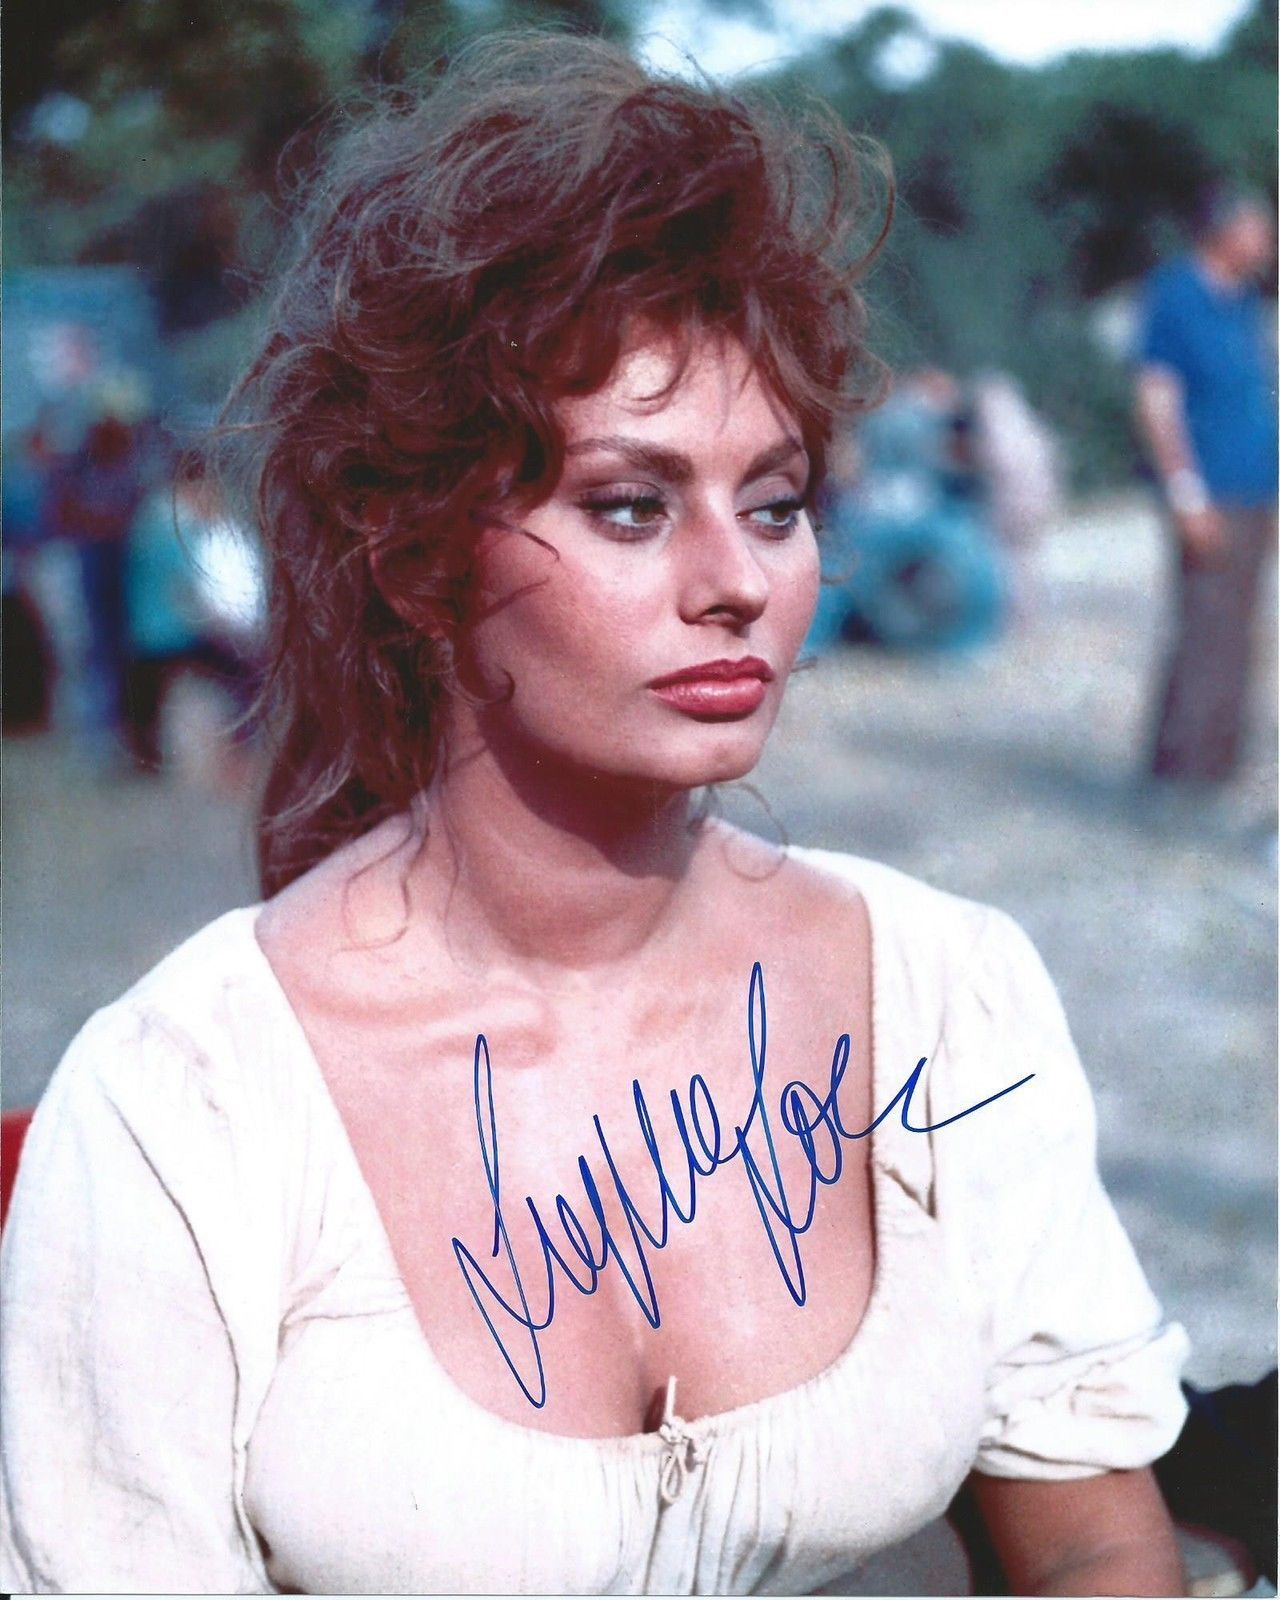 Gorgeous Autograph Signed 8x10 Photo: Sophia Loren Sexy Beautiful Signed Authentic Autographed